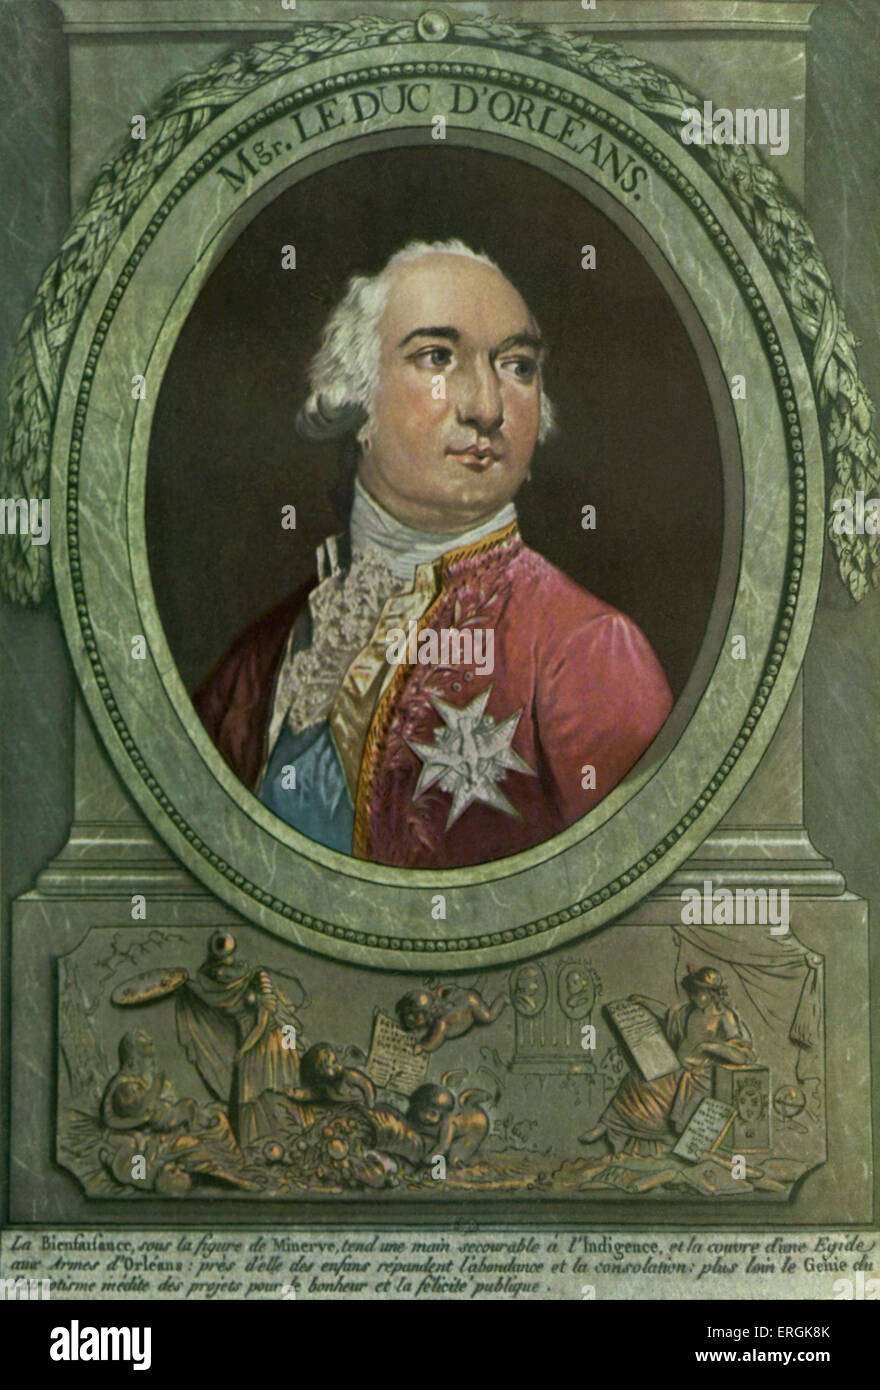 Louis Philippe Duke of Orléans (1747 - 1793), wearing blue sash and insignia of the Order of the Saint-Esprit - Stock Image